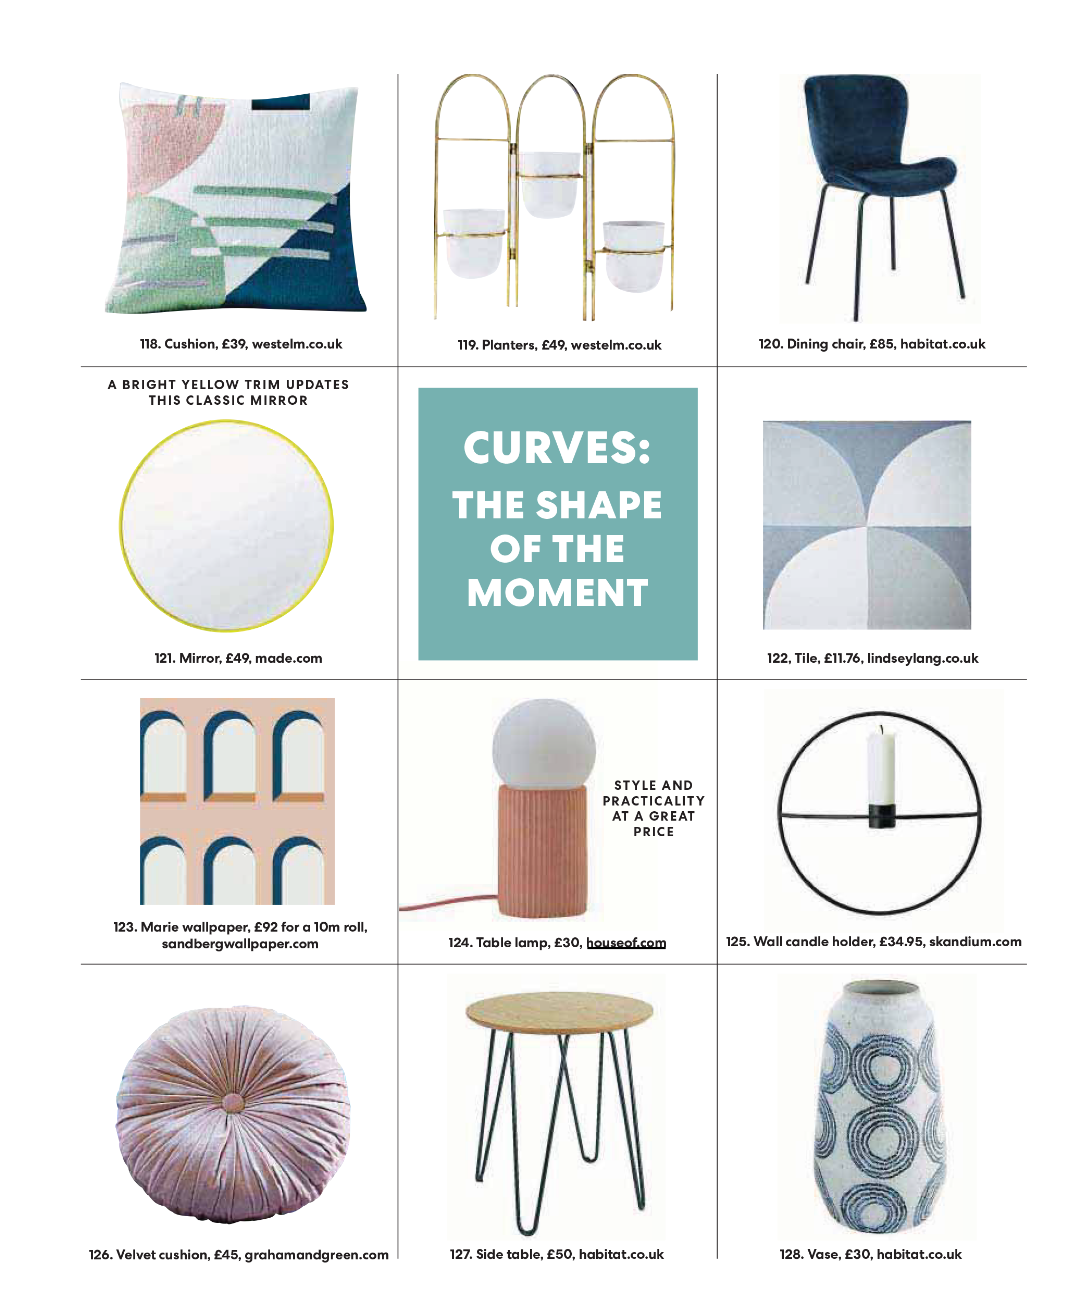 houseof-press-img-0719-themailonsunday-curves-concrete-ribbed-table-lamp-pink